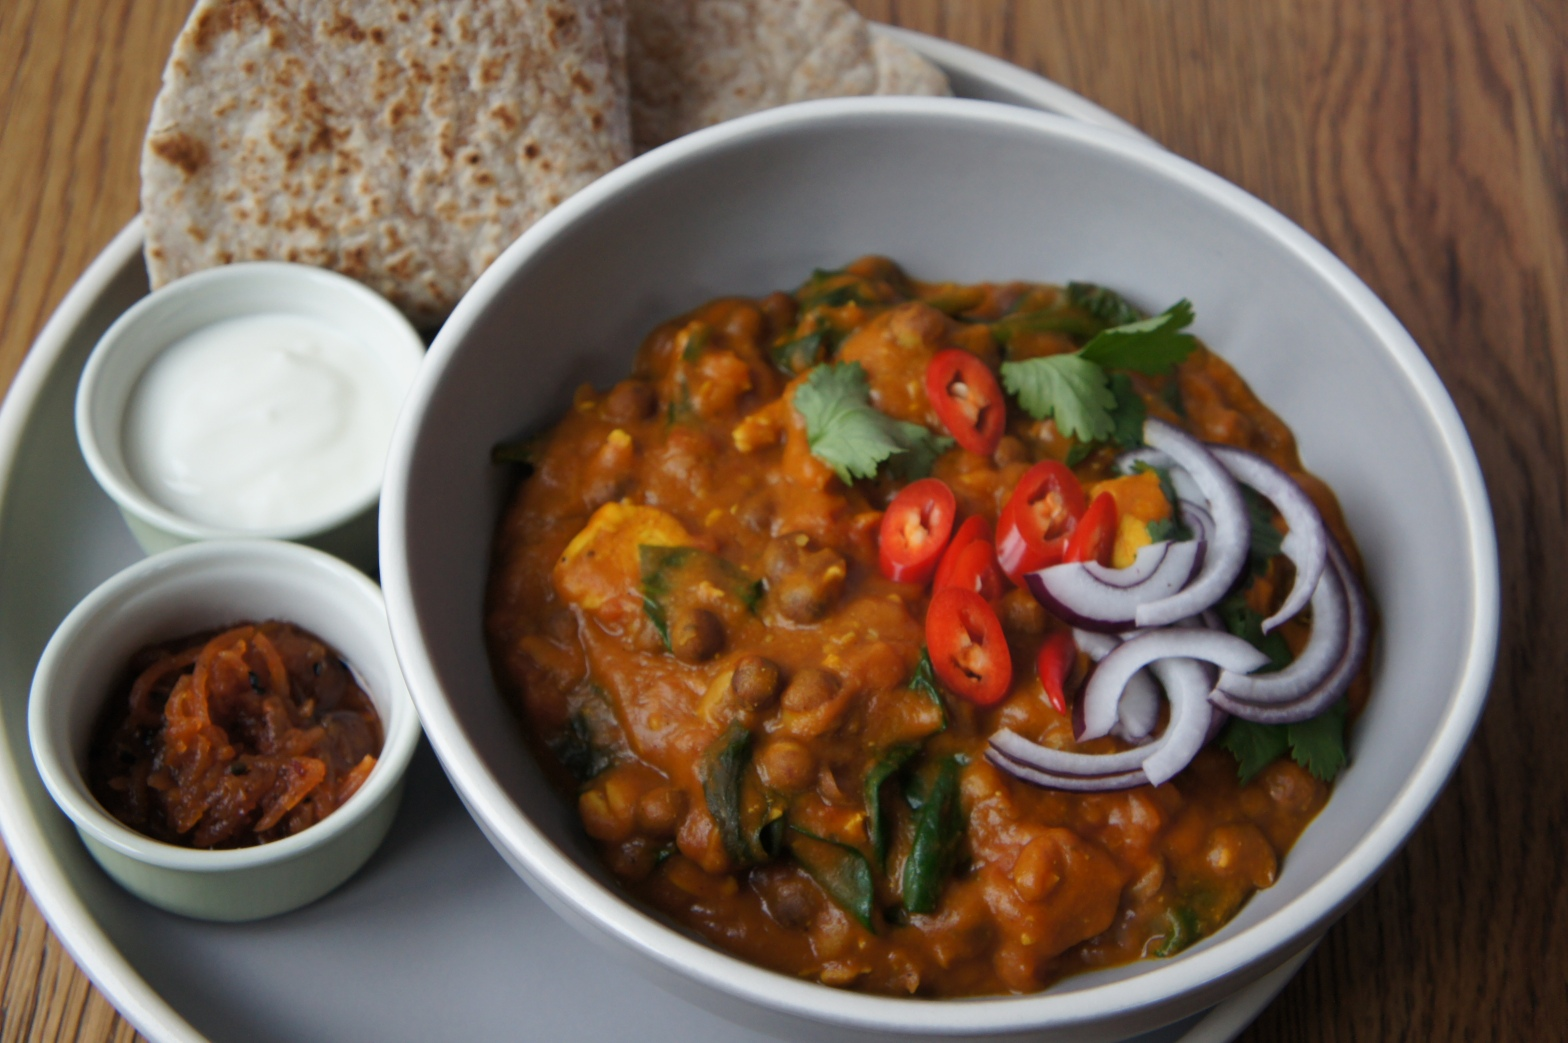 Chicken & Carlin pea curry with chapatis